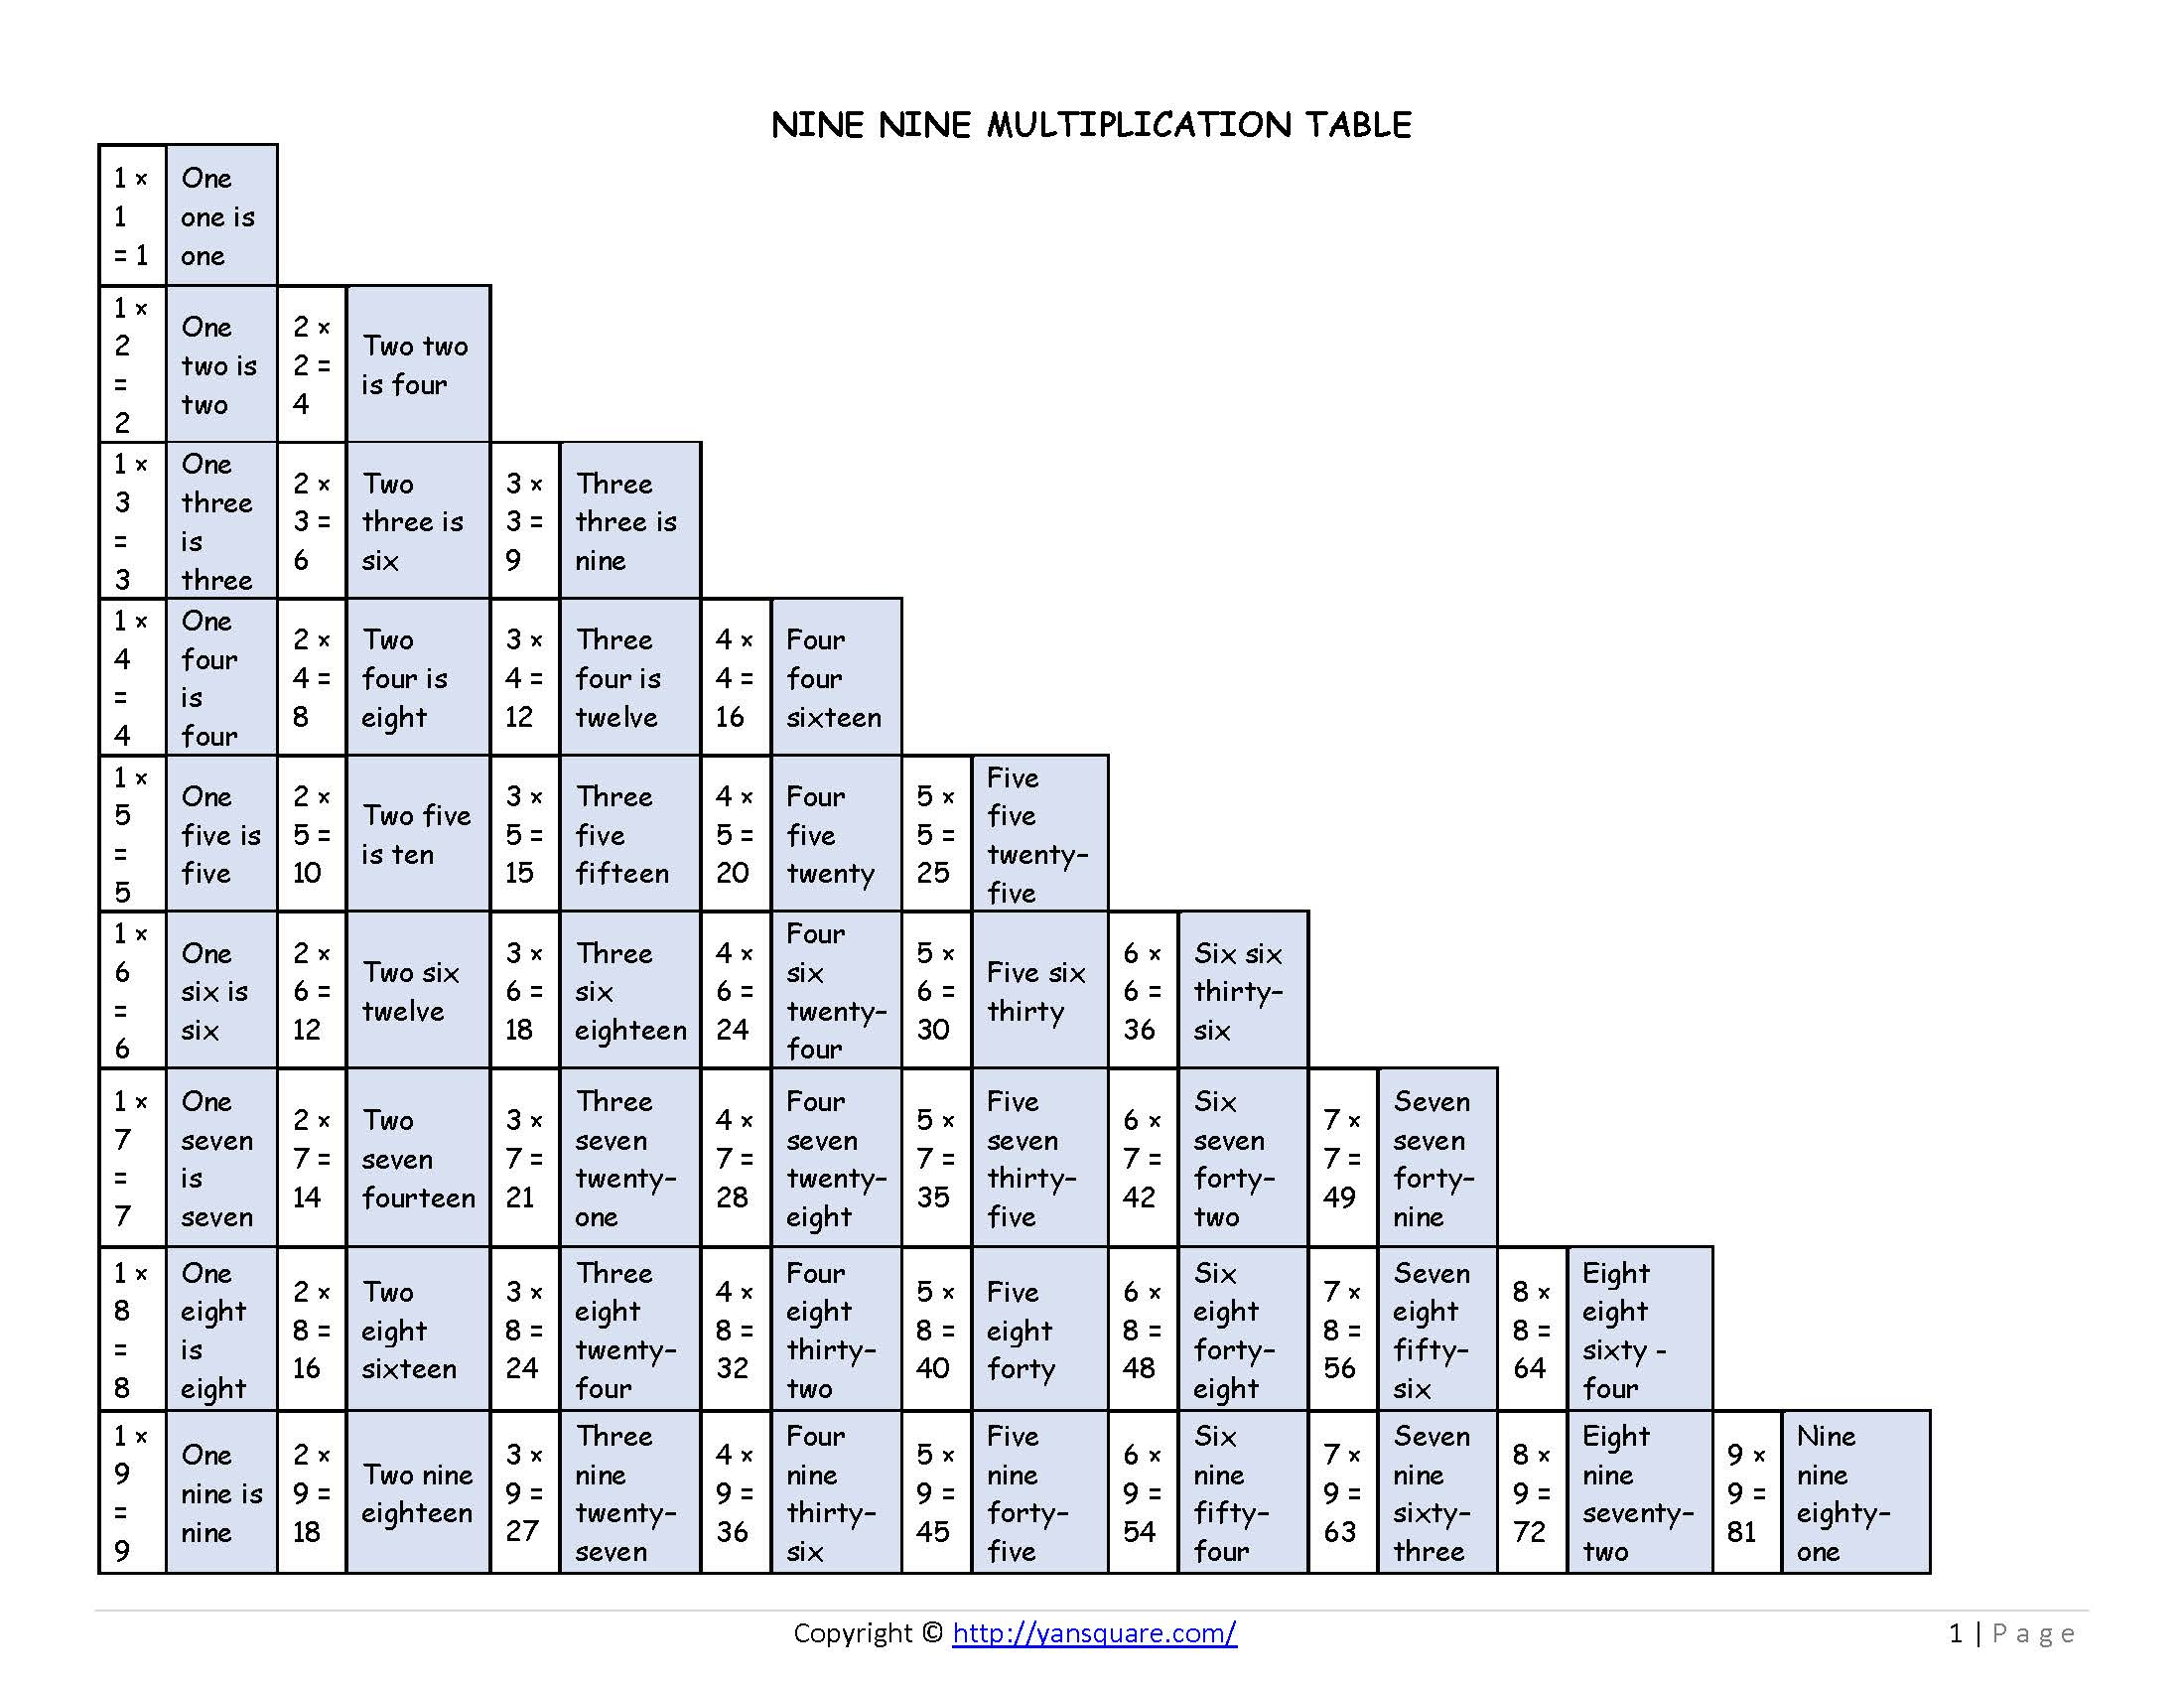 Nine Nine Multiplication Table English - One Big Table